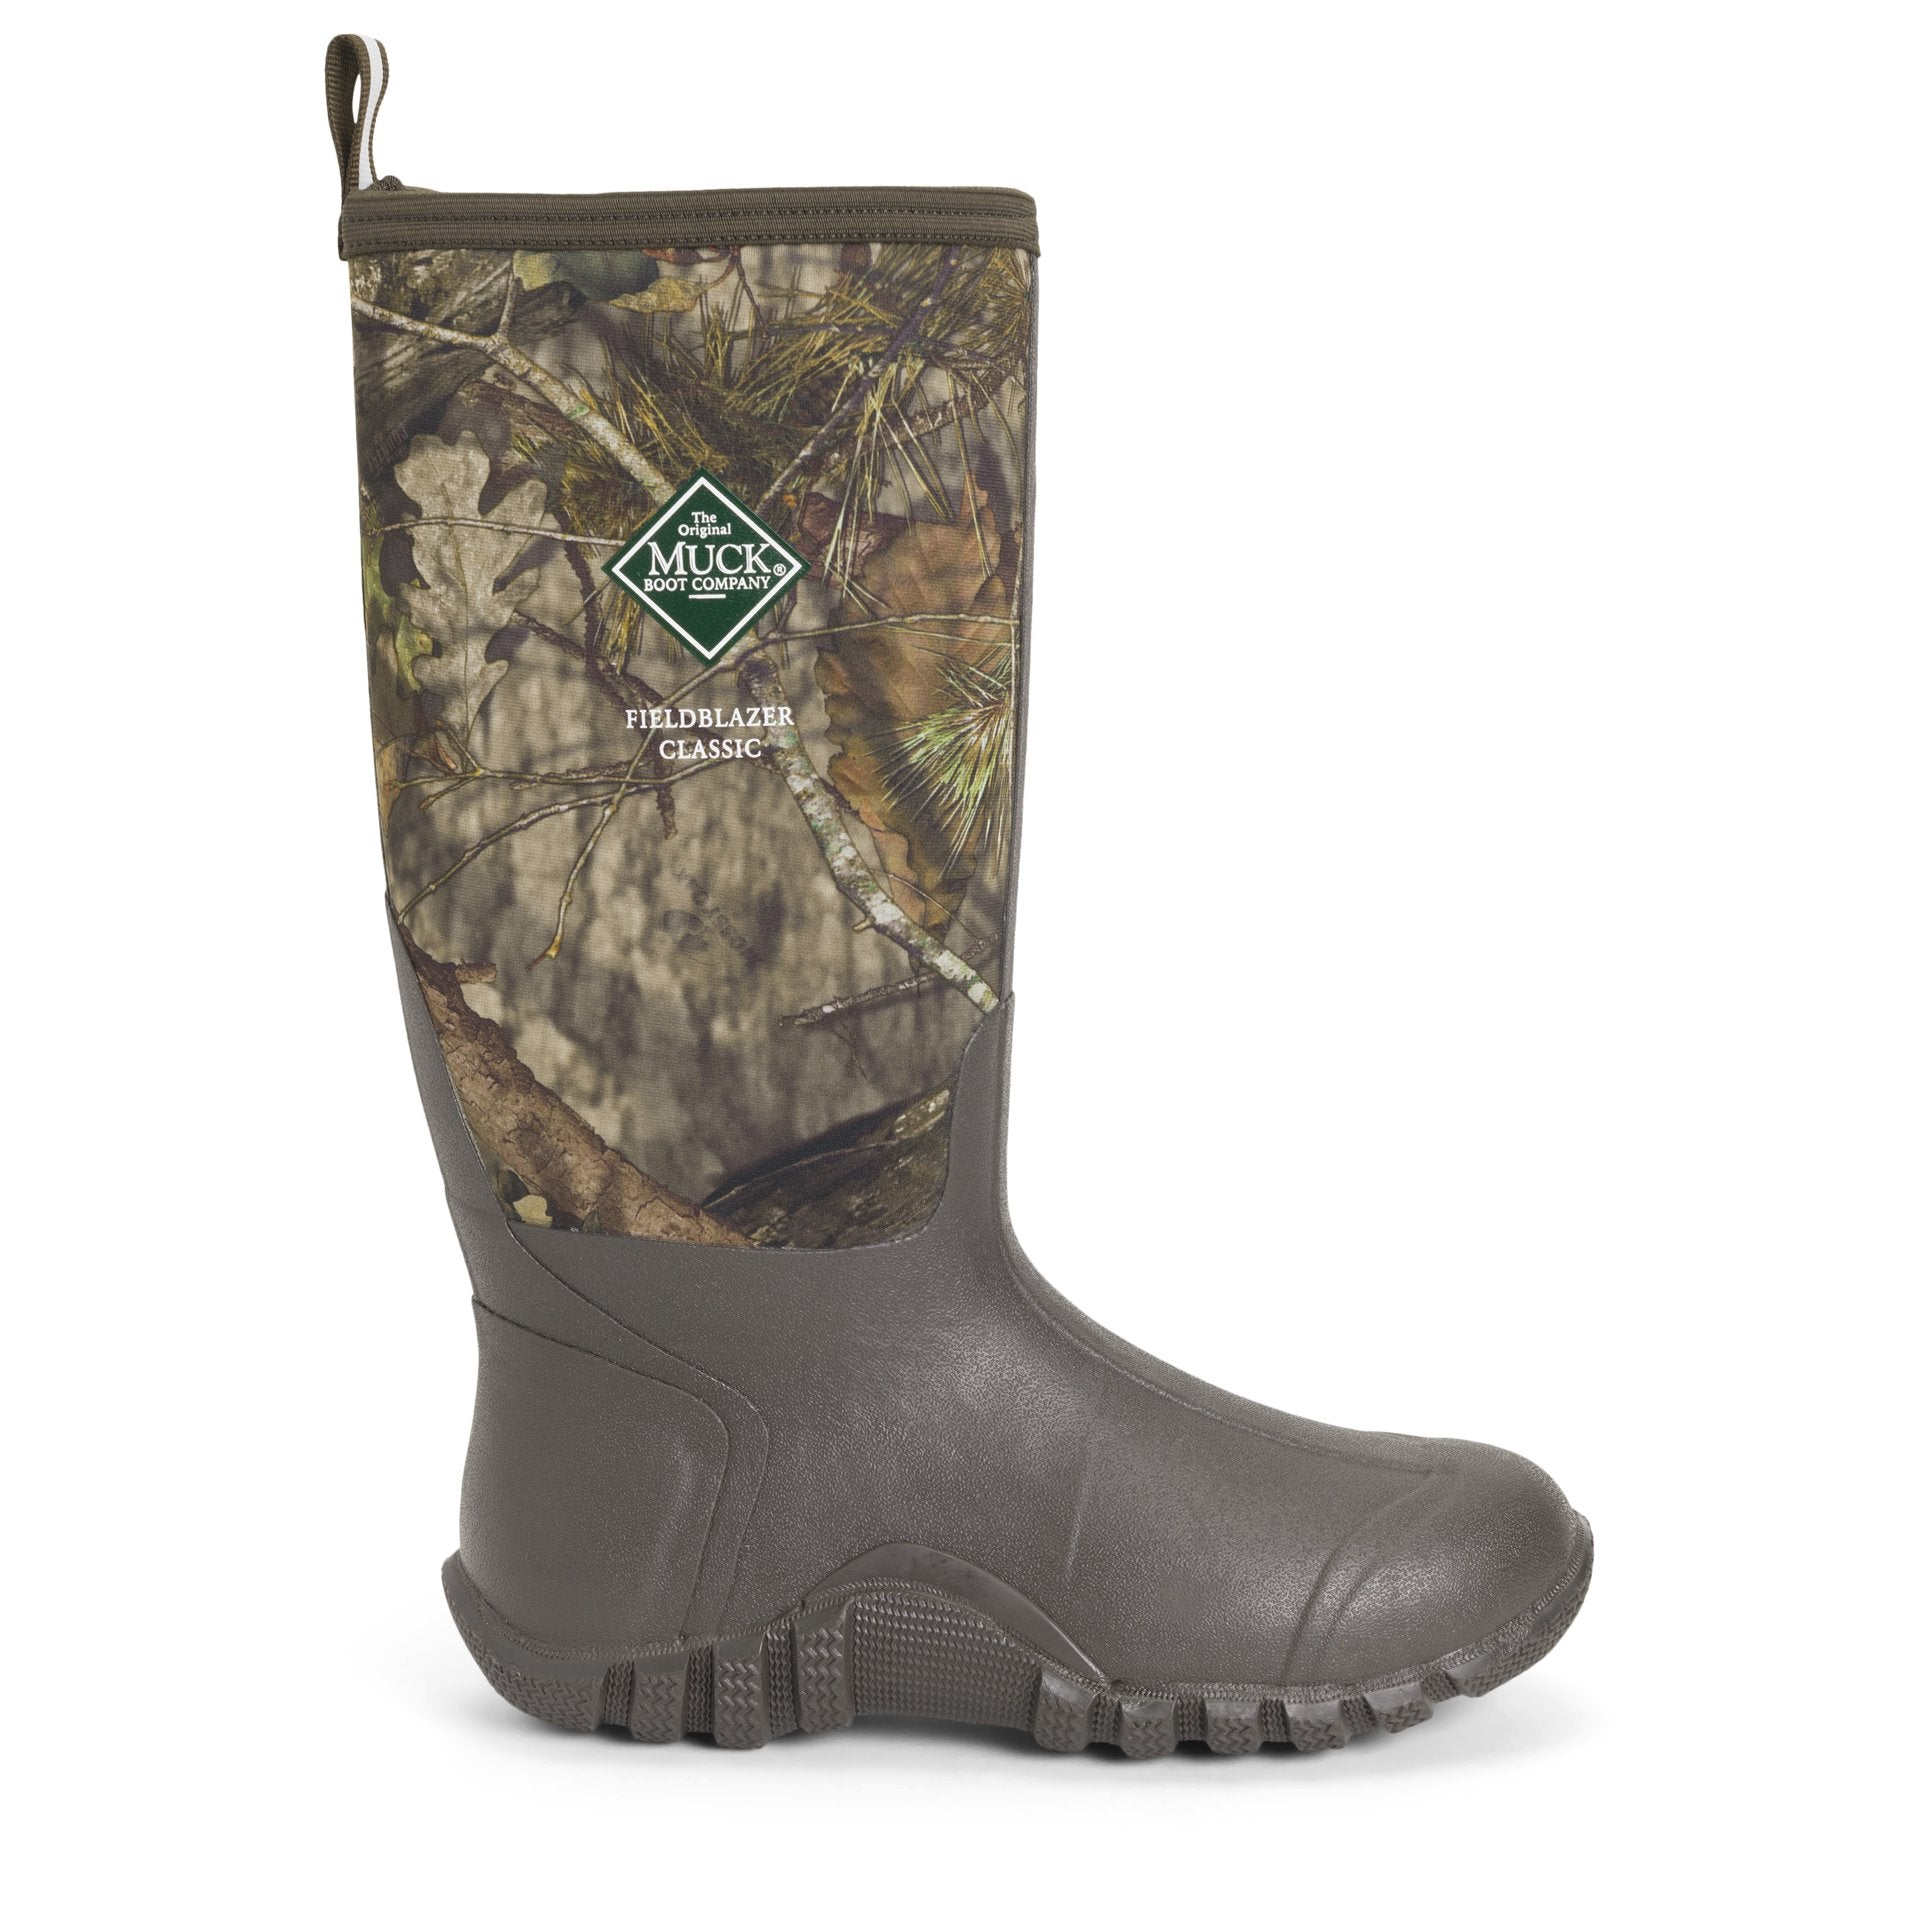 1f076f323c3 Men's Fieldblazer Classic | The Original Muck Boot Company™ USA